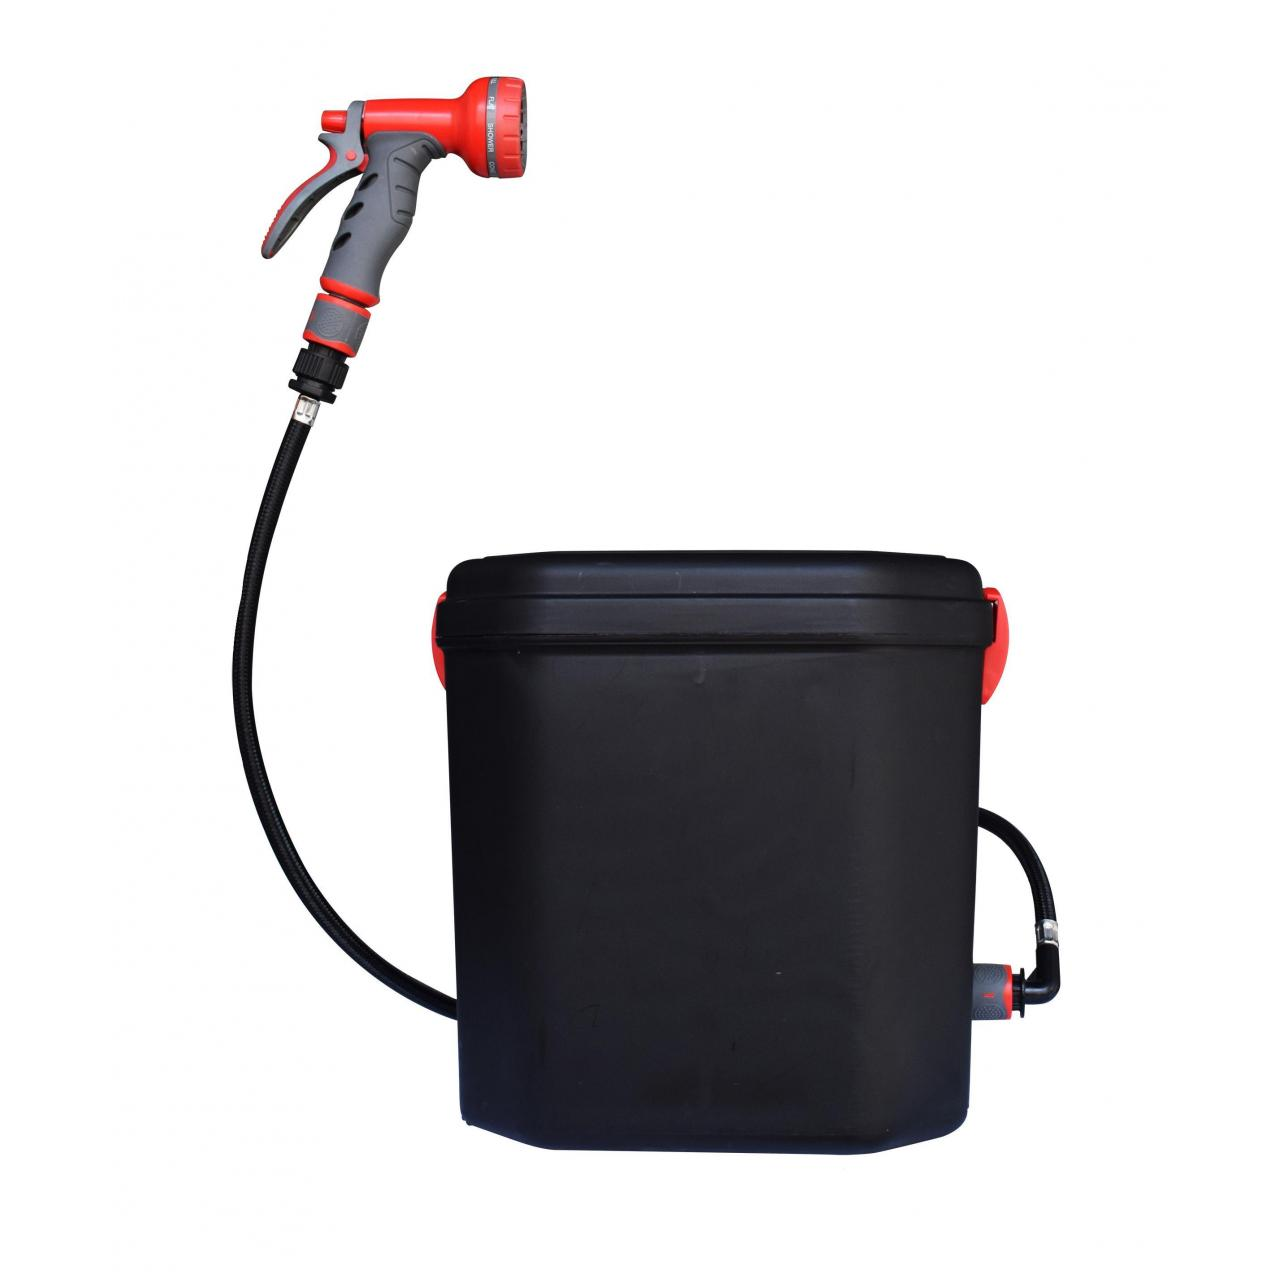 12V portable electric car washing and cleaning kit